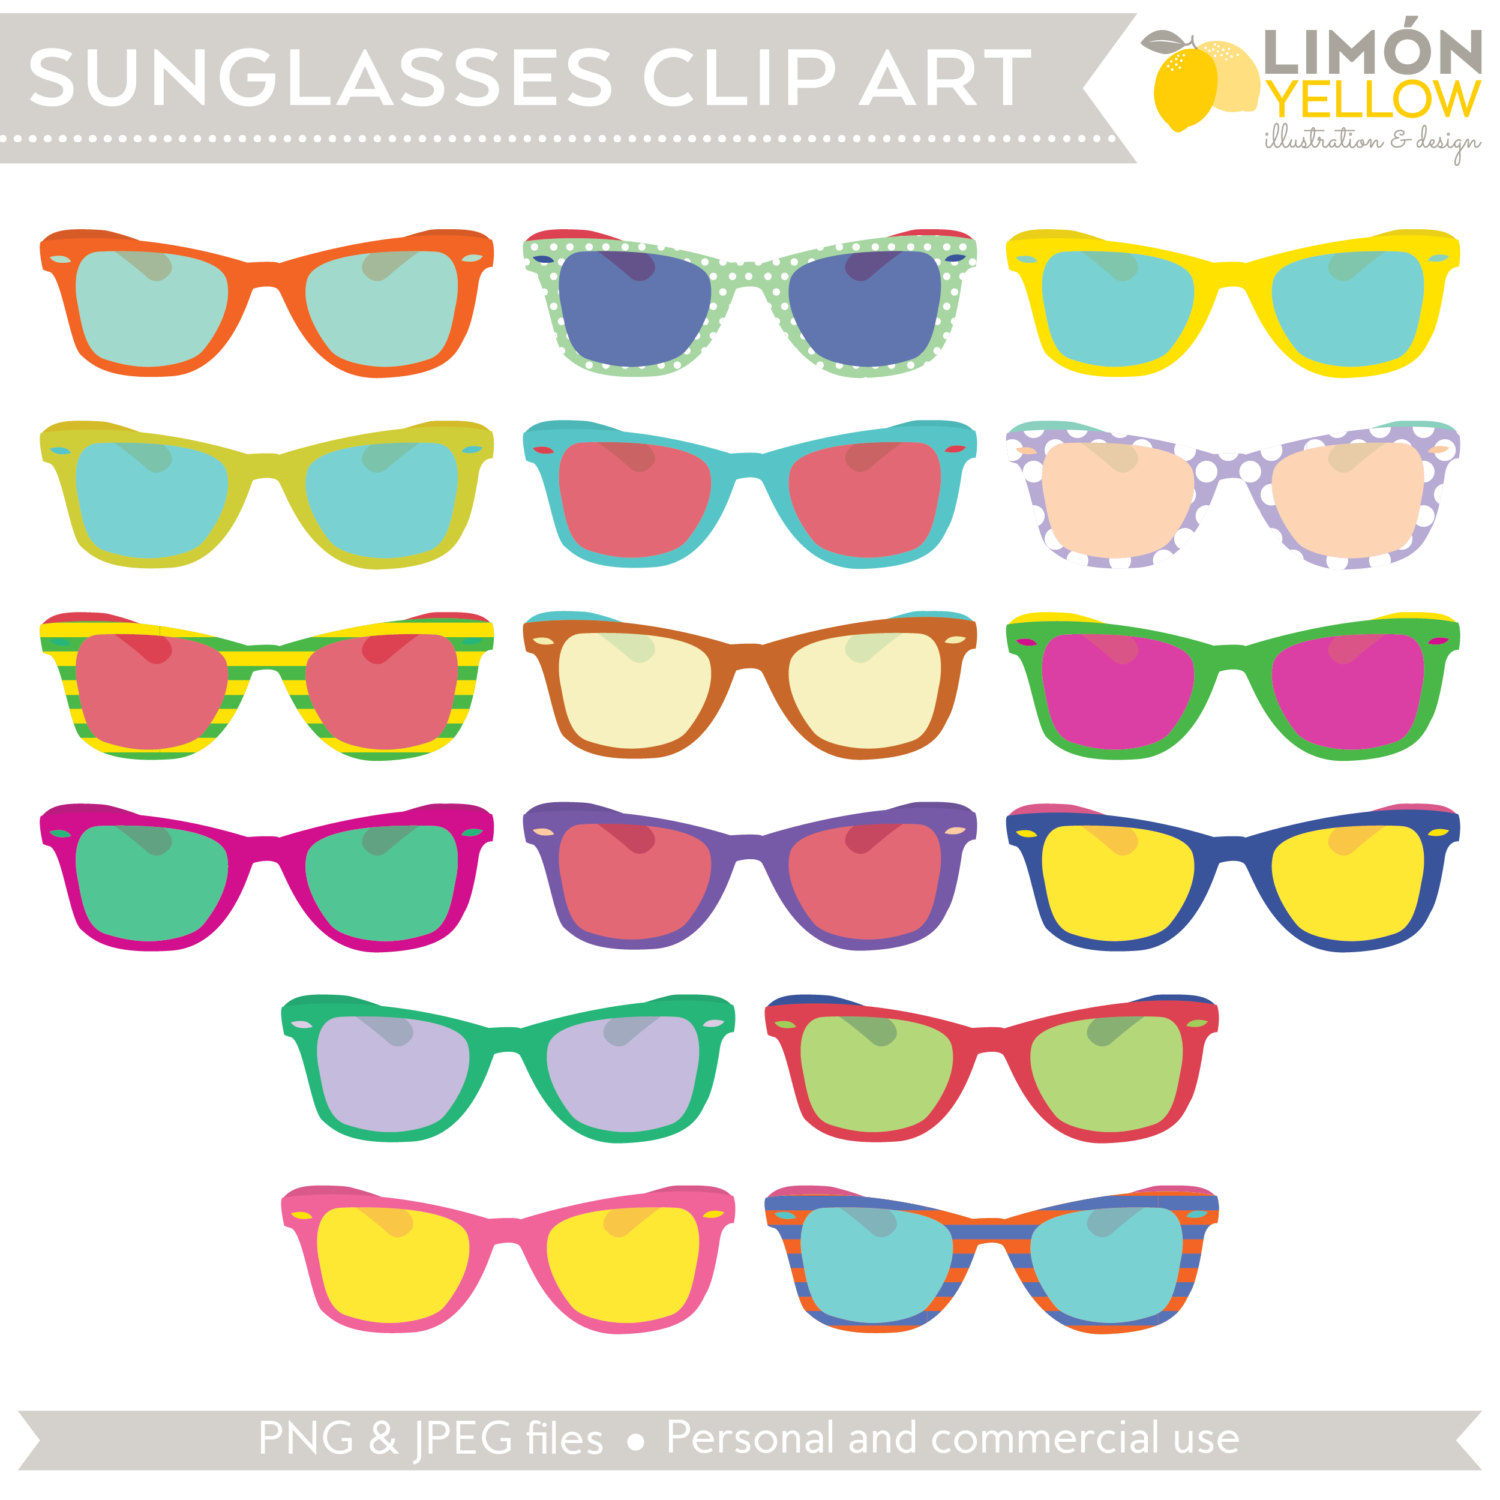 Mint green sunglasses clipart picture free Mint green sunglasses clipart - ClipartFest picture free